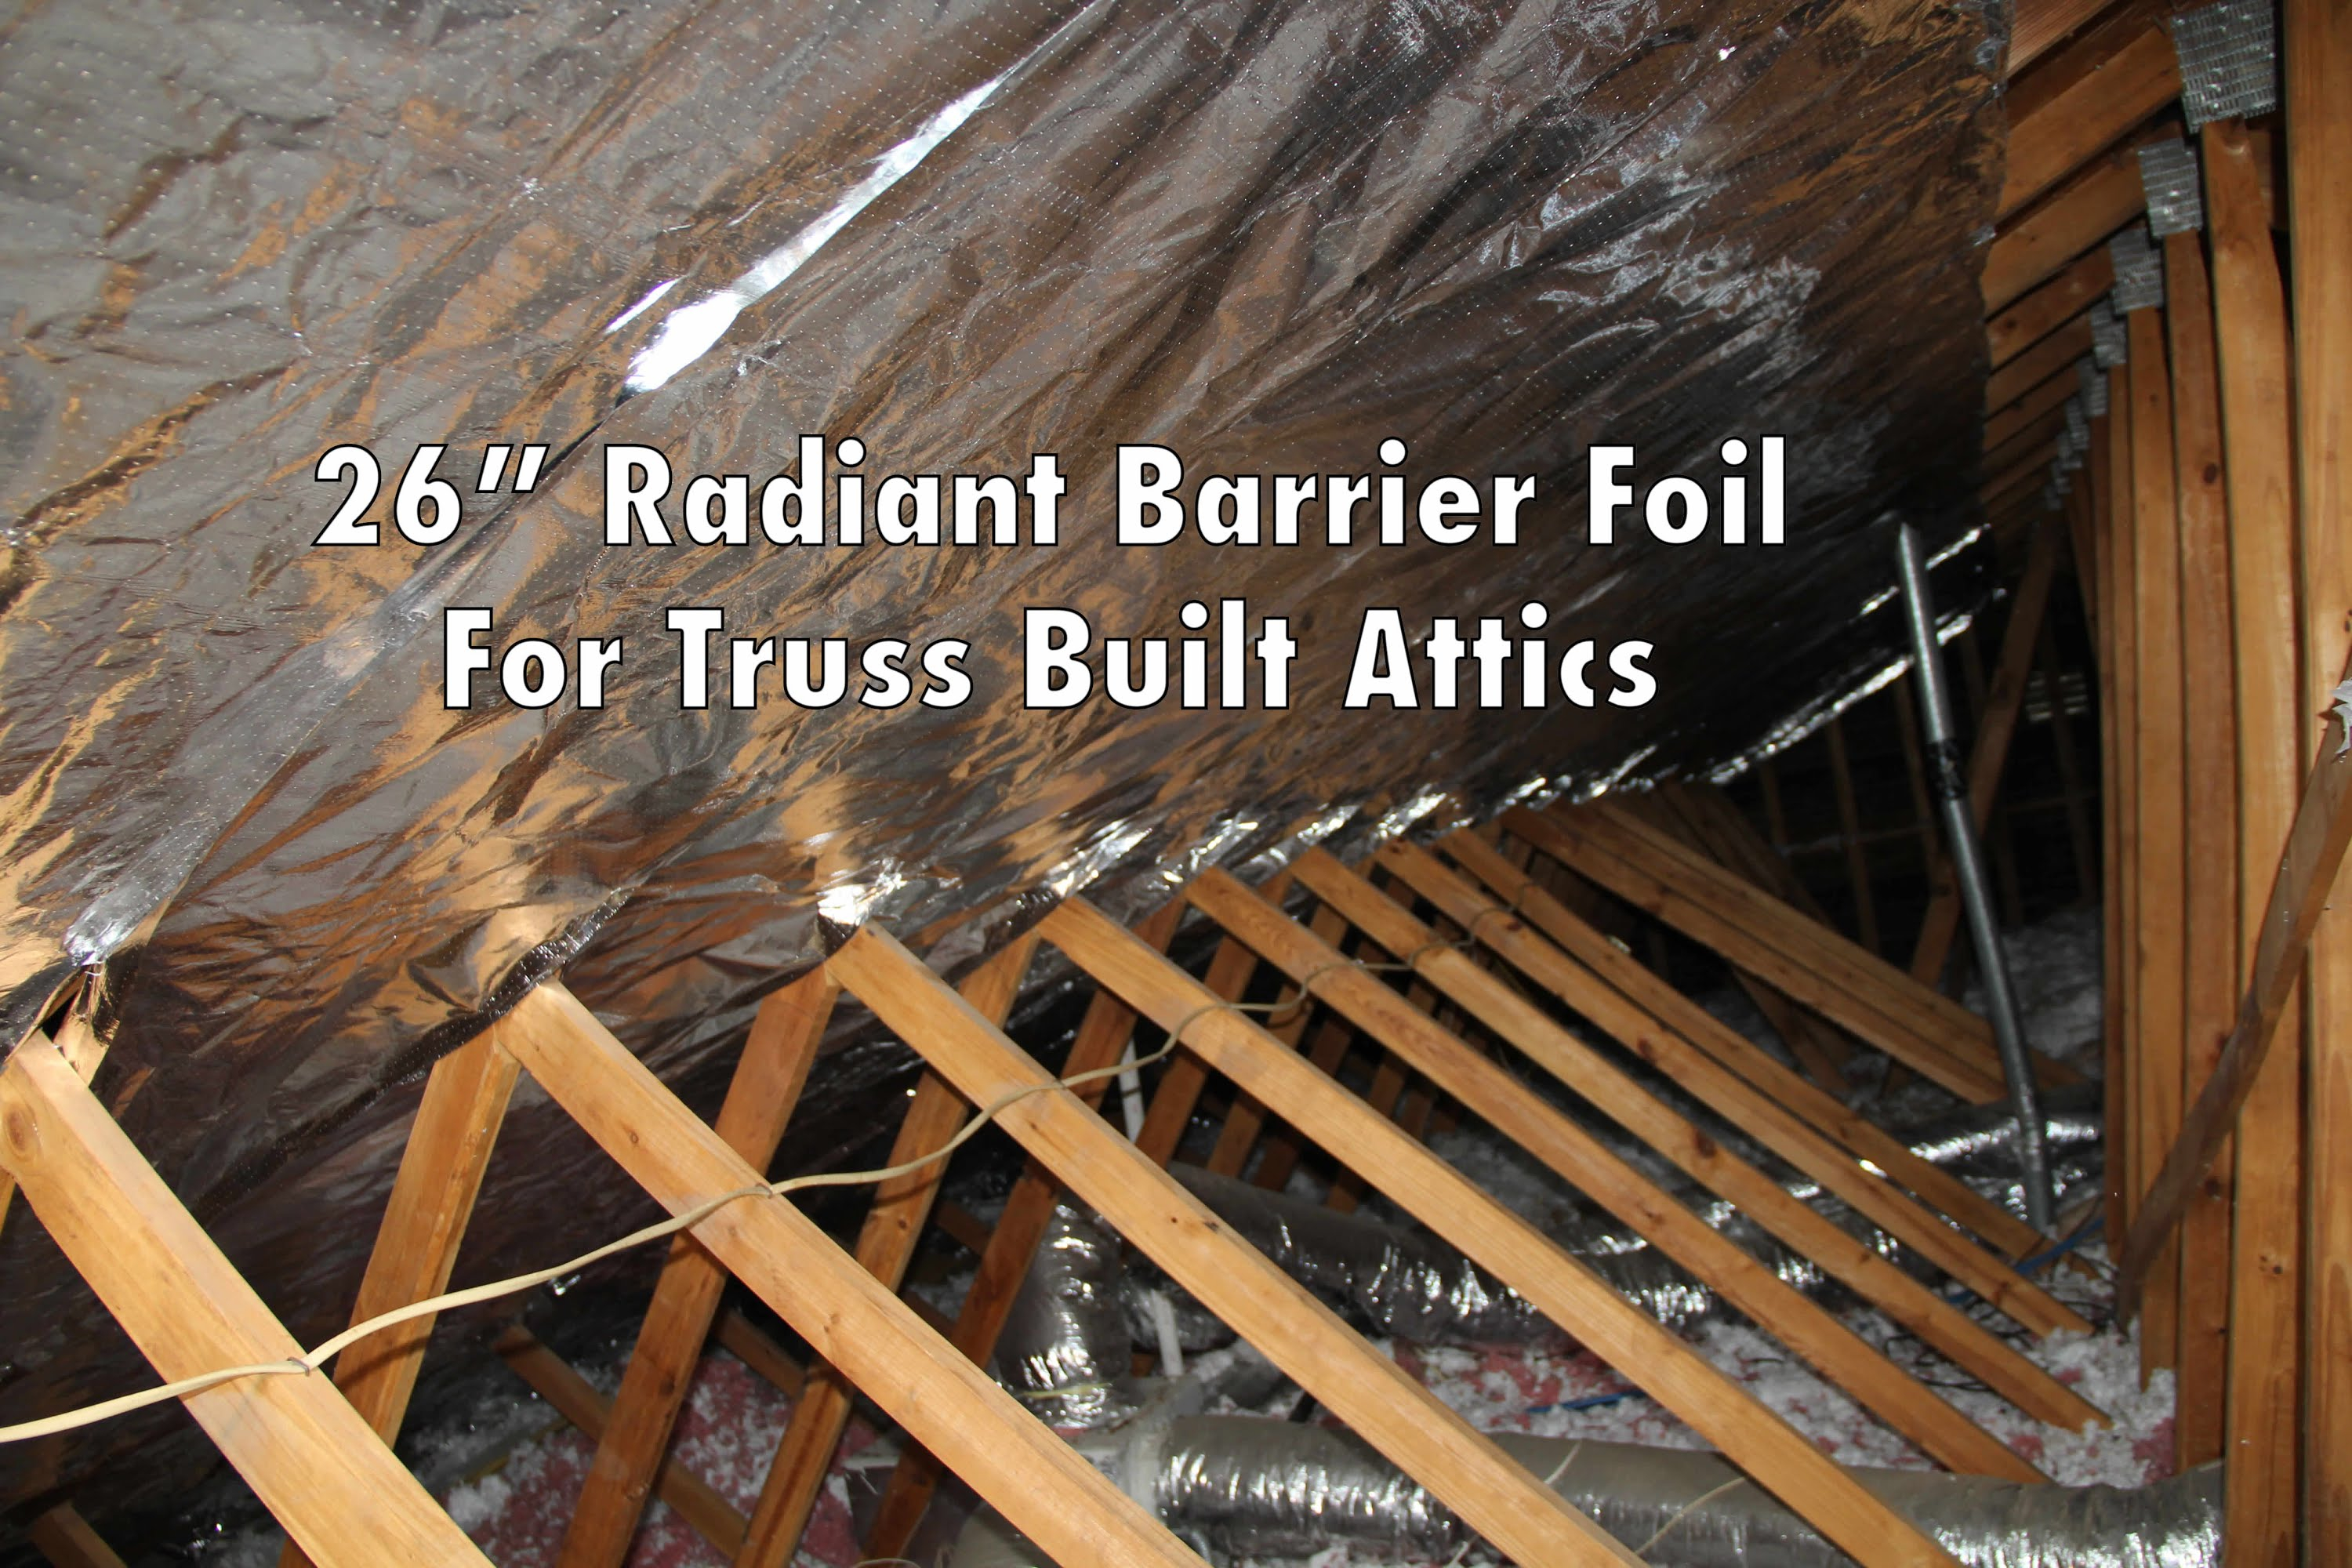 55 Attic Reflective Barrier 1000 Sqft Radiant Barrier Attic Foil within measurements 3000 X 2000